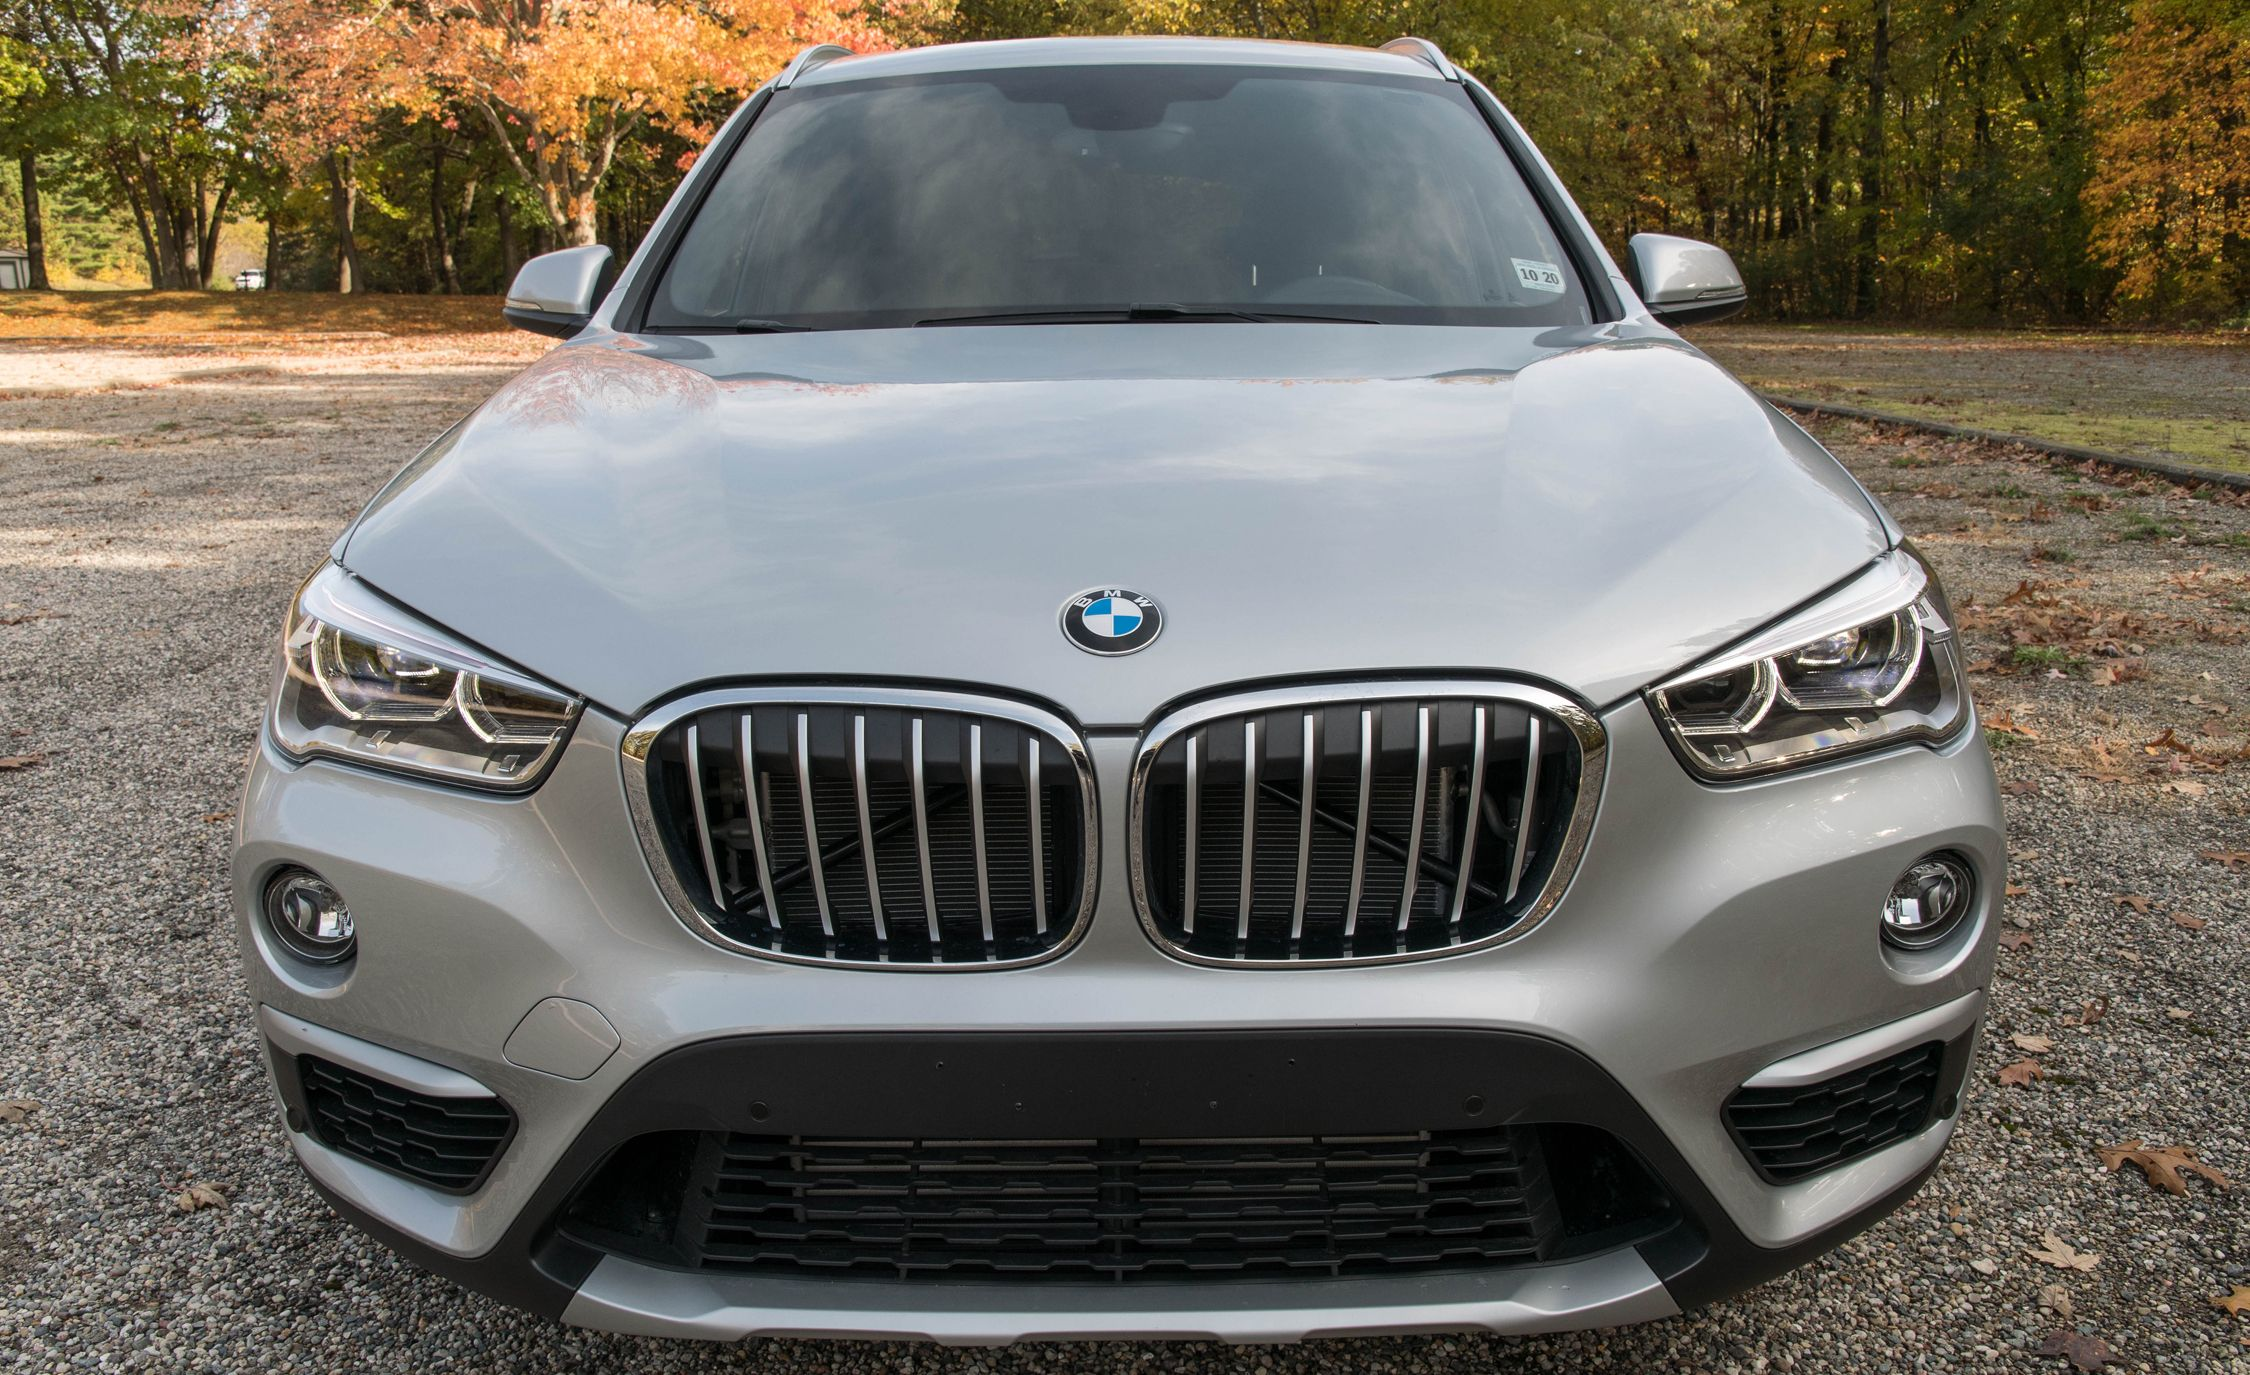 Bmw X1 Engine Diagram E24 Safety And Driver Assistance At